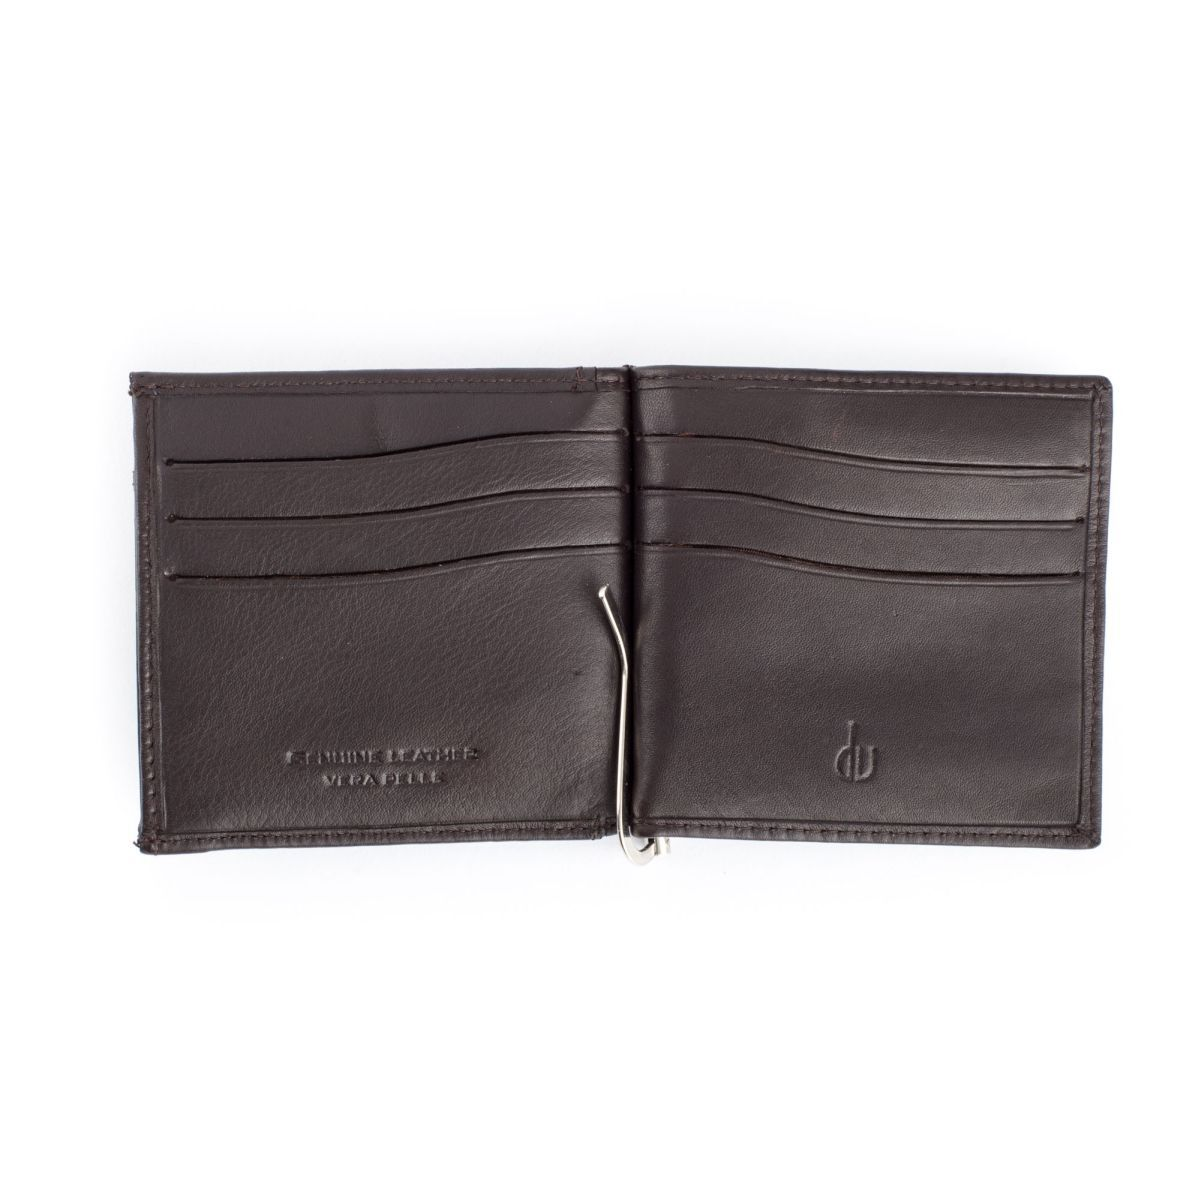 Small Leather Wallet With Clips And Coin Pocket - Dark Brown